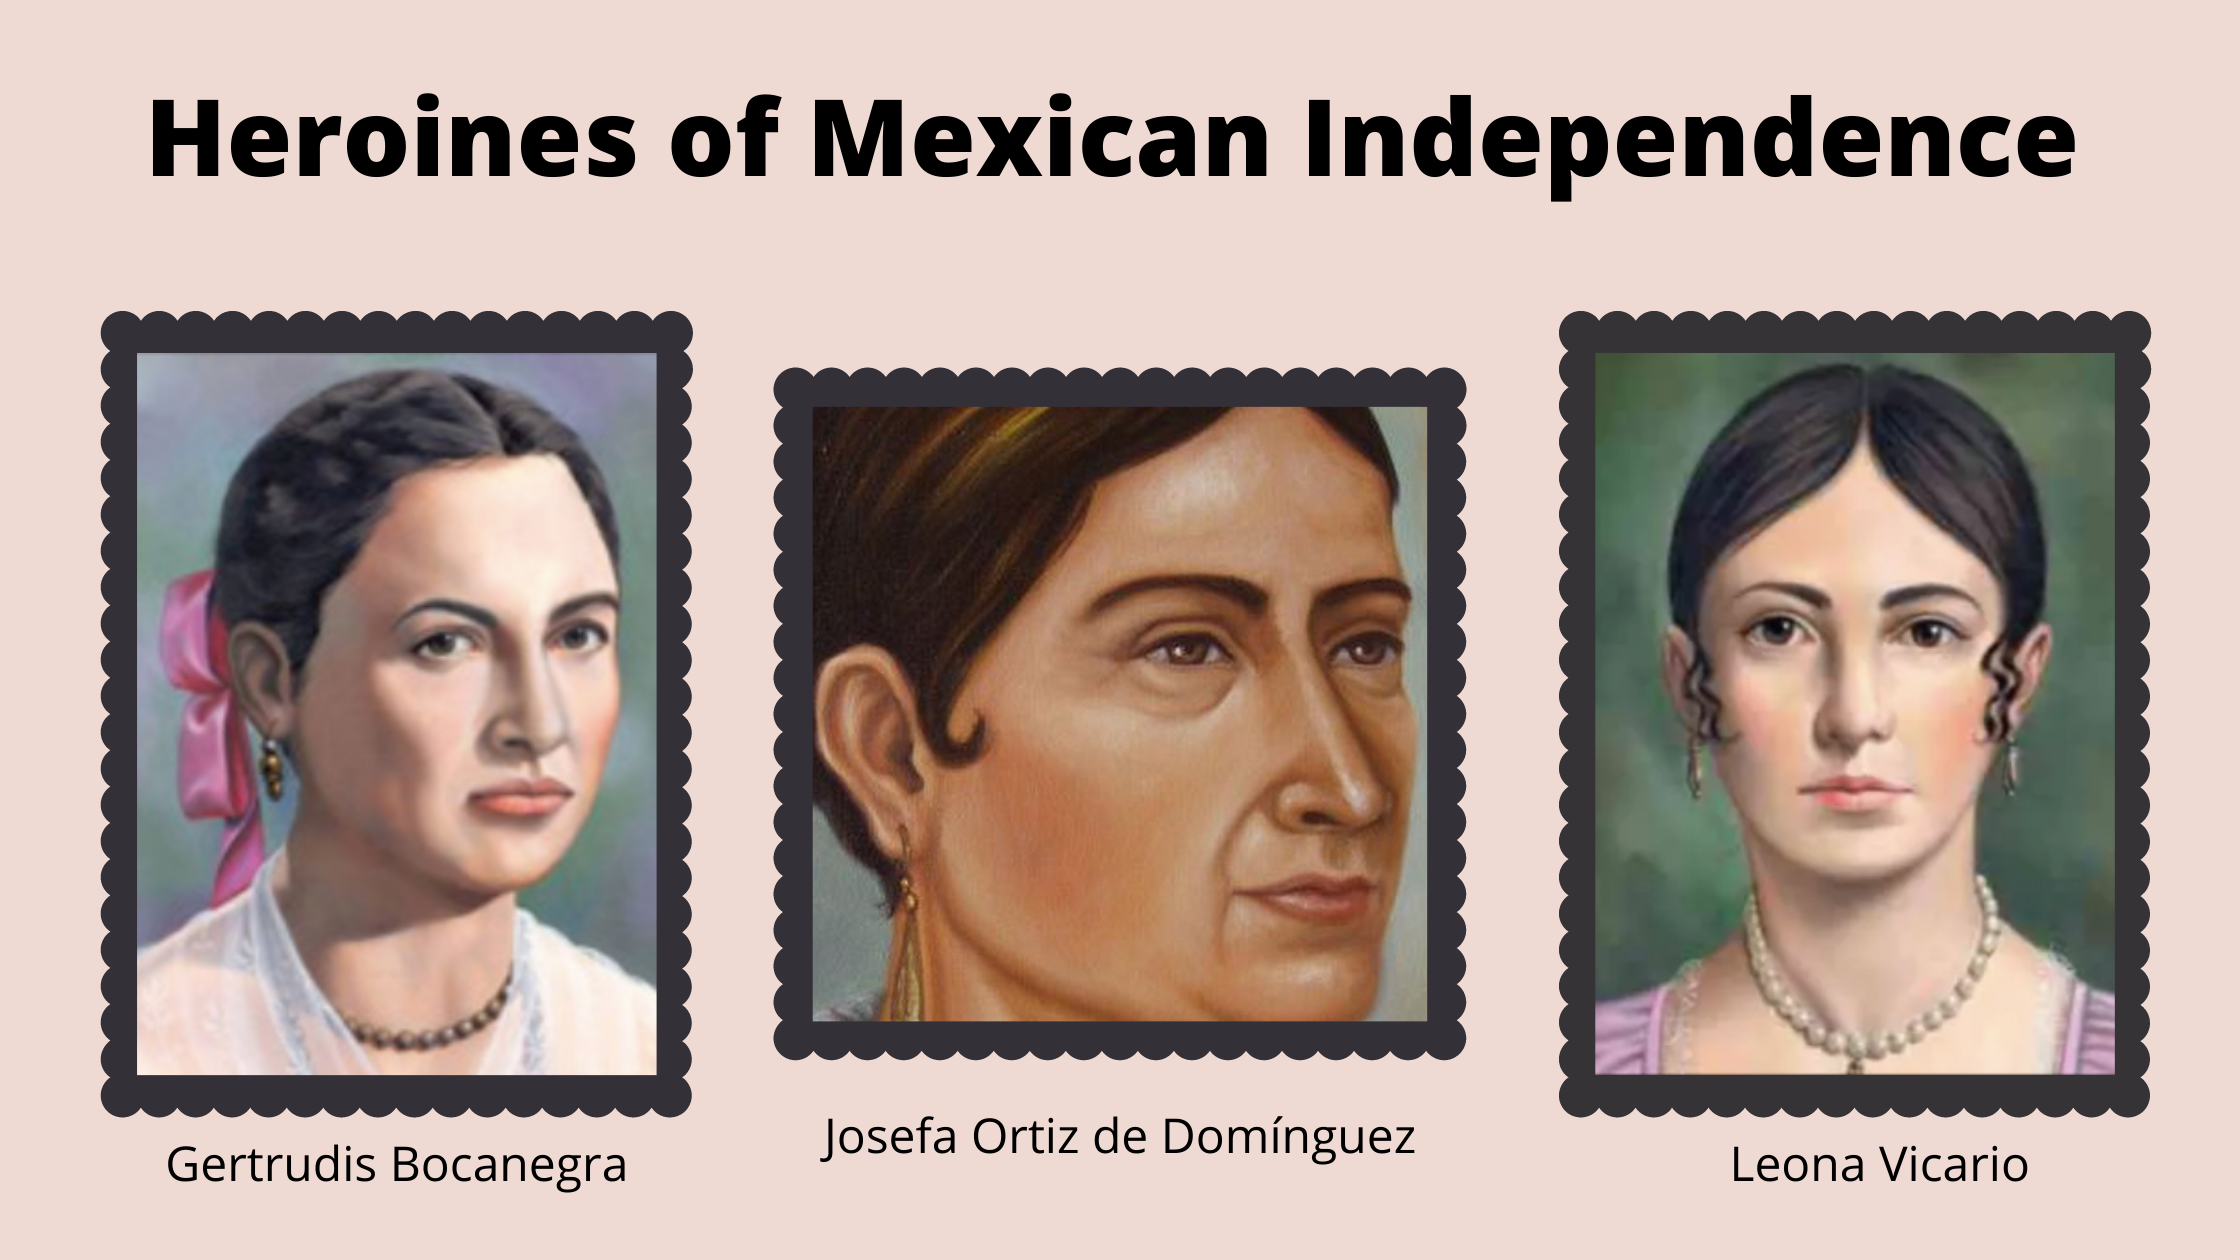 The Women of Mexican Independence